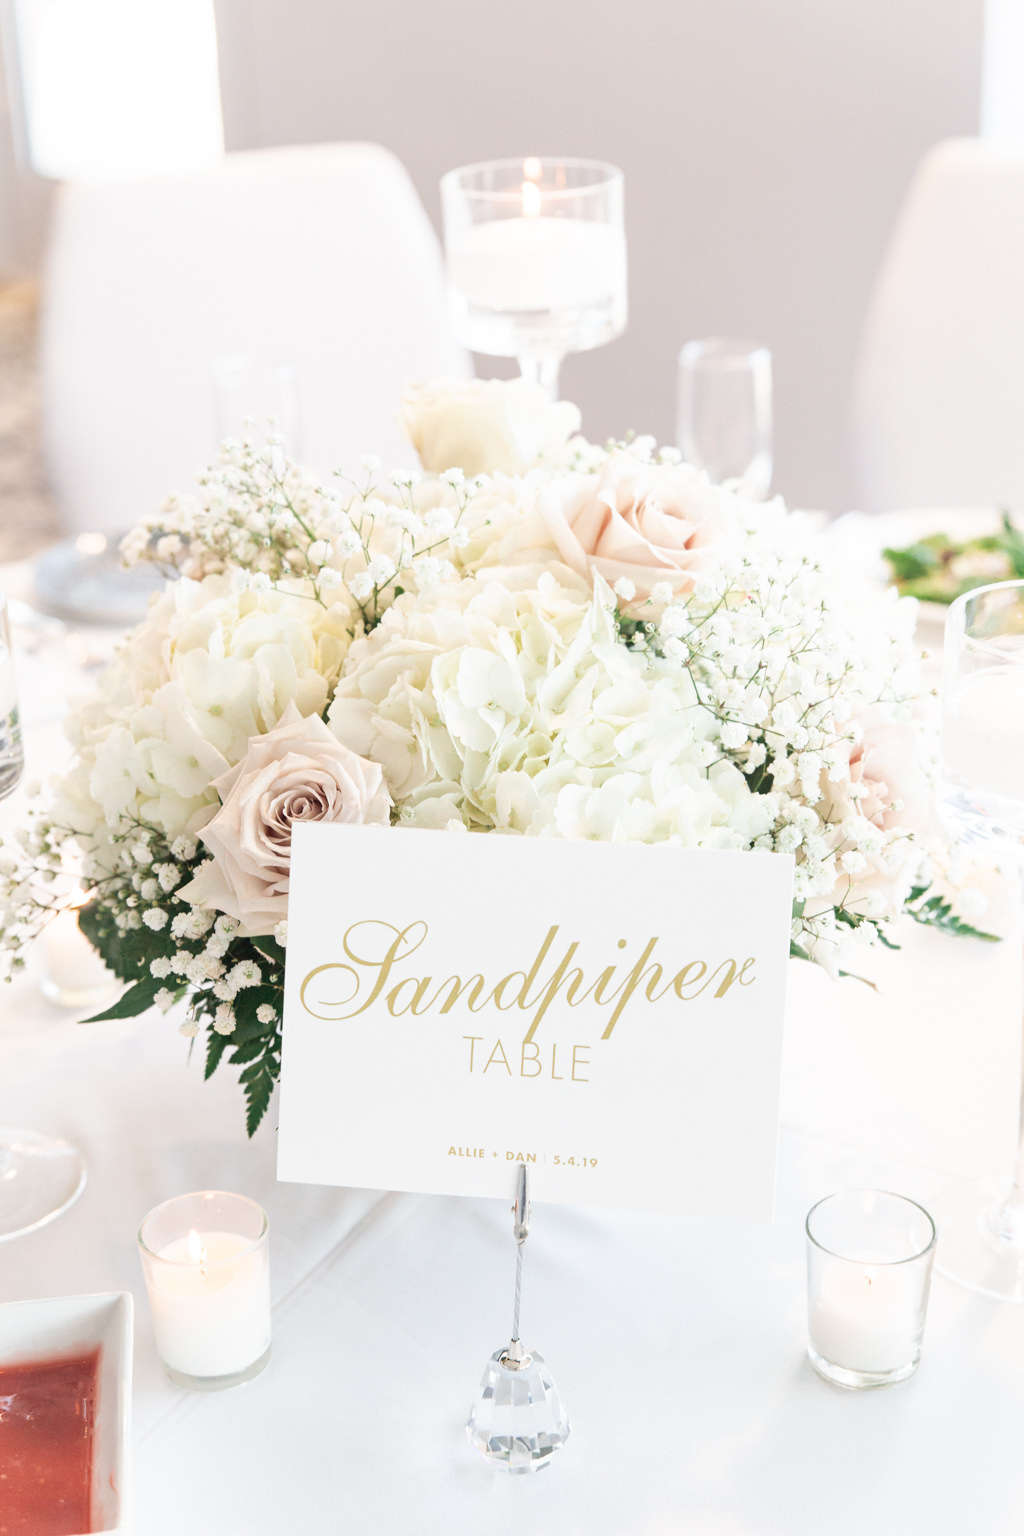 Classic Elegant Wedding Reception Decor, White Hydrangeas, Blush Pink Roses, Baby's Breath and Greenery Low Floral Centerpiece, White and Gold Font Custom Table Name Sign